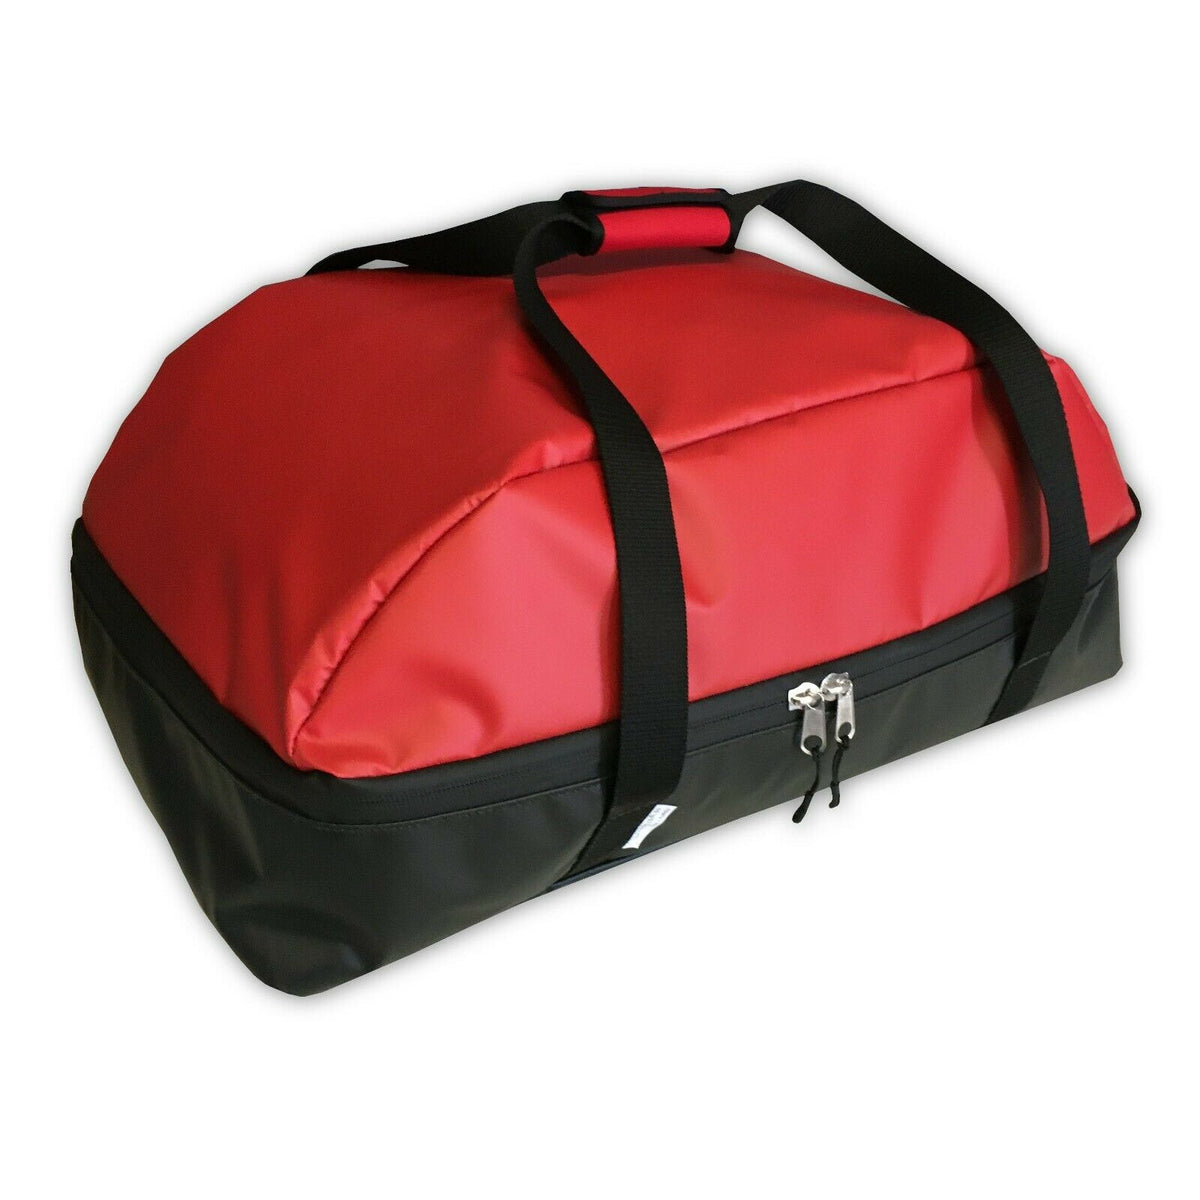 Weber Q200 carry bag for travel